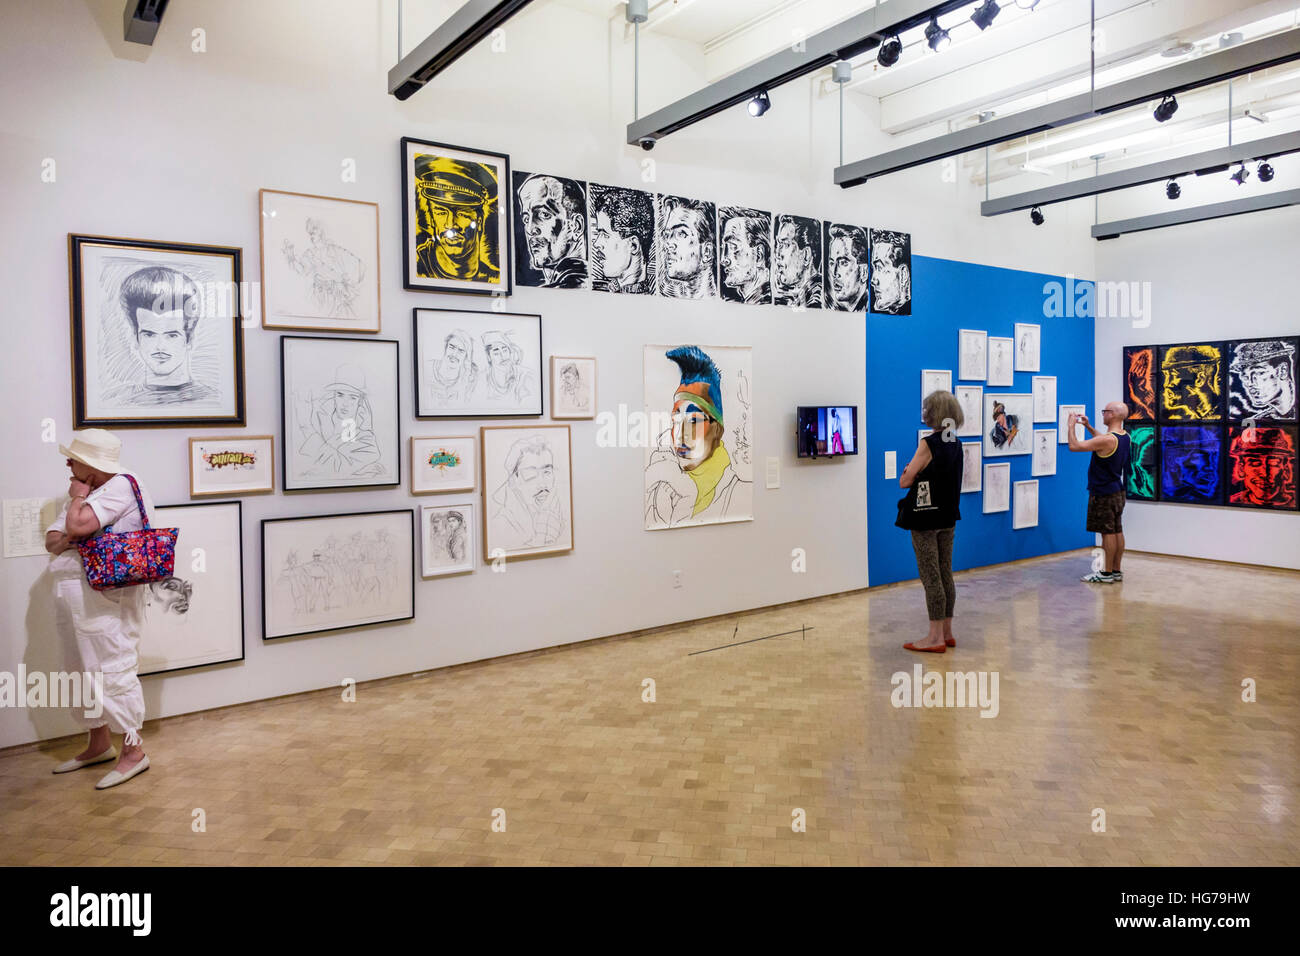 El Museo Del Barrio Art El Barrio Nyc Stock Photos And El Barrio Nyc Stock Images